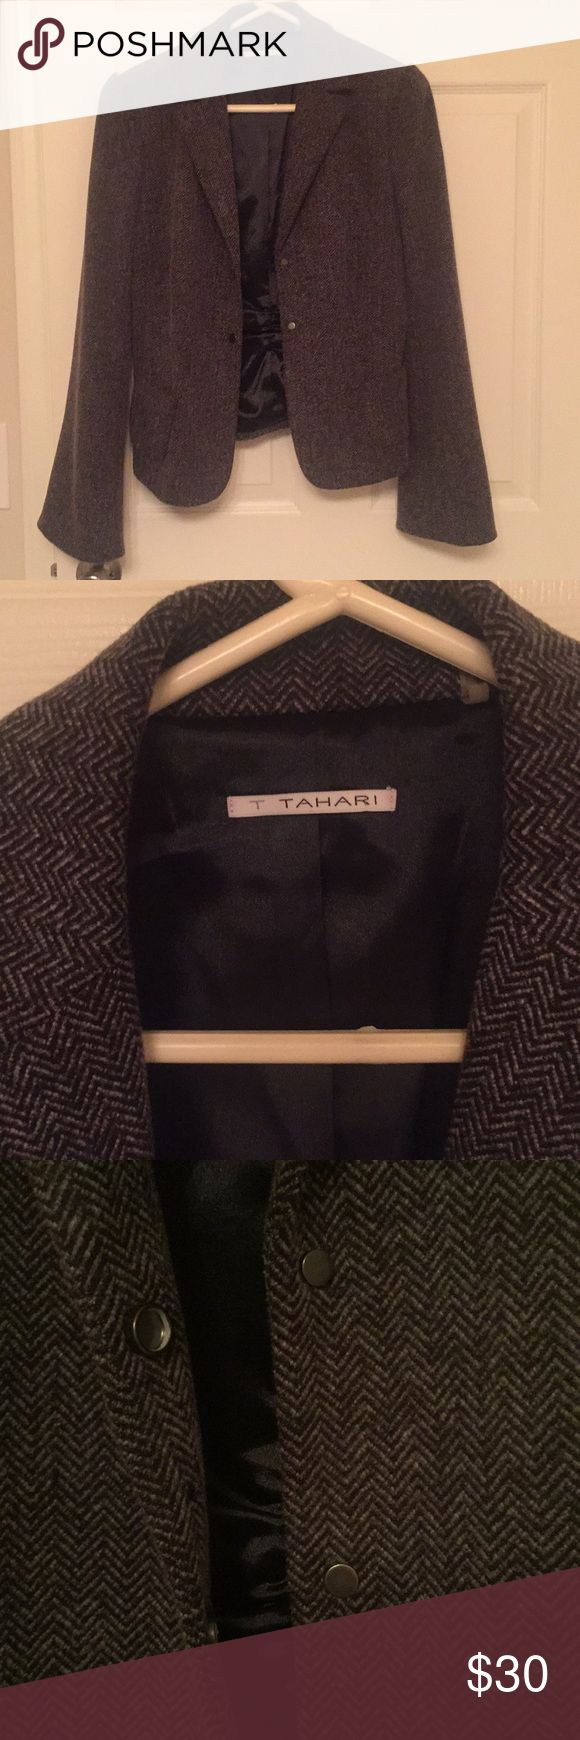 T Tahari Herringbone Jacket T Tahari gray herringbone jacket. Worn a few times - it's in good condition, like new. It is a size 8 and has bell sleeves. The material is soft and allows for movement. T Tahari Jackets & Coats Blazers